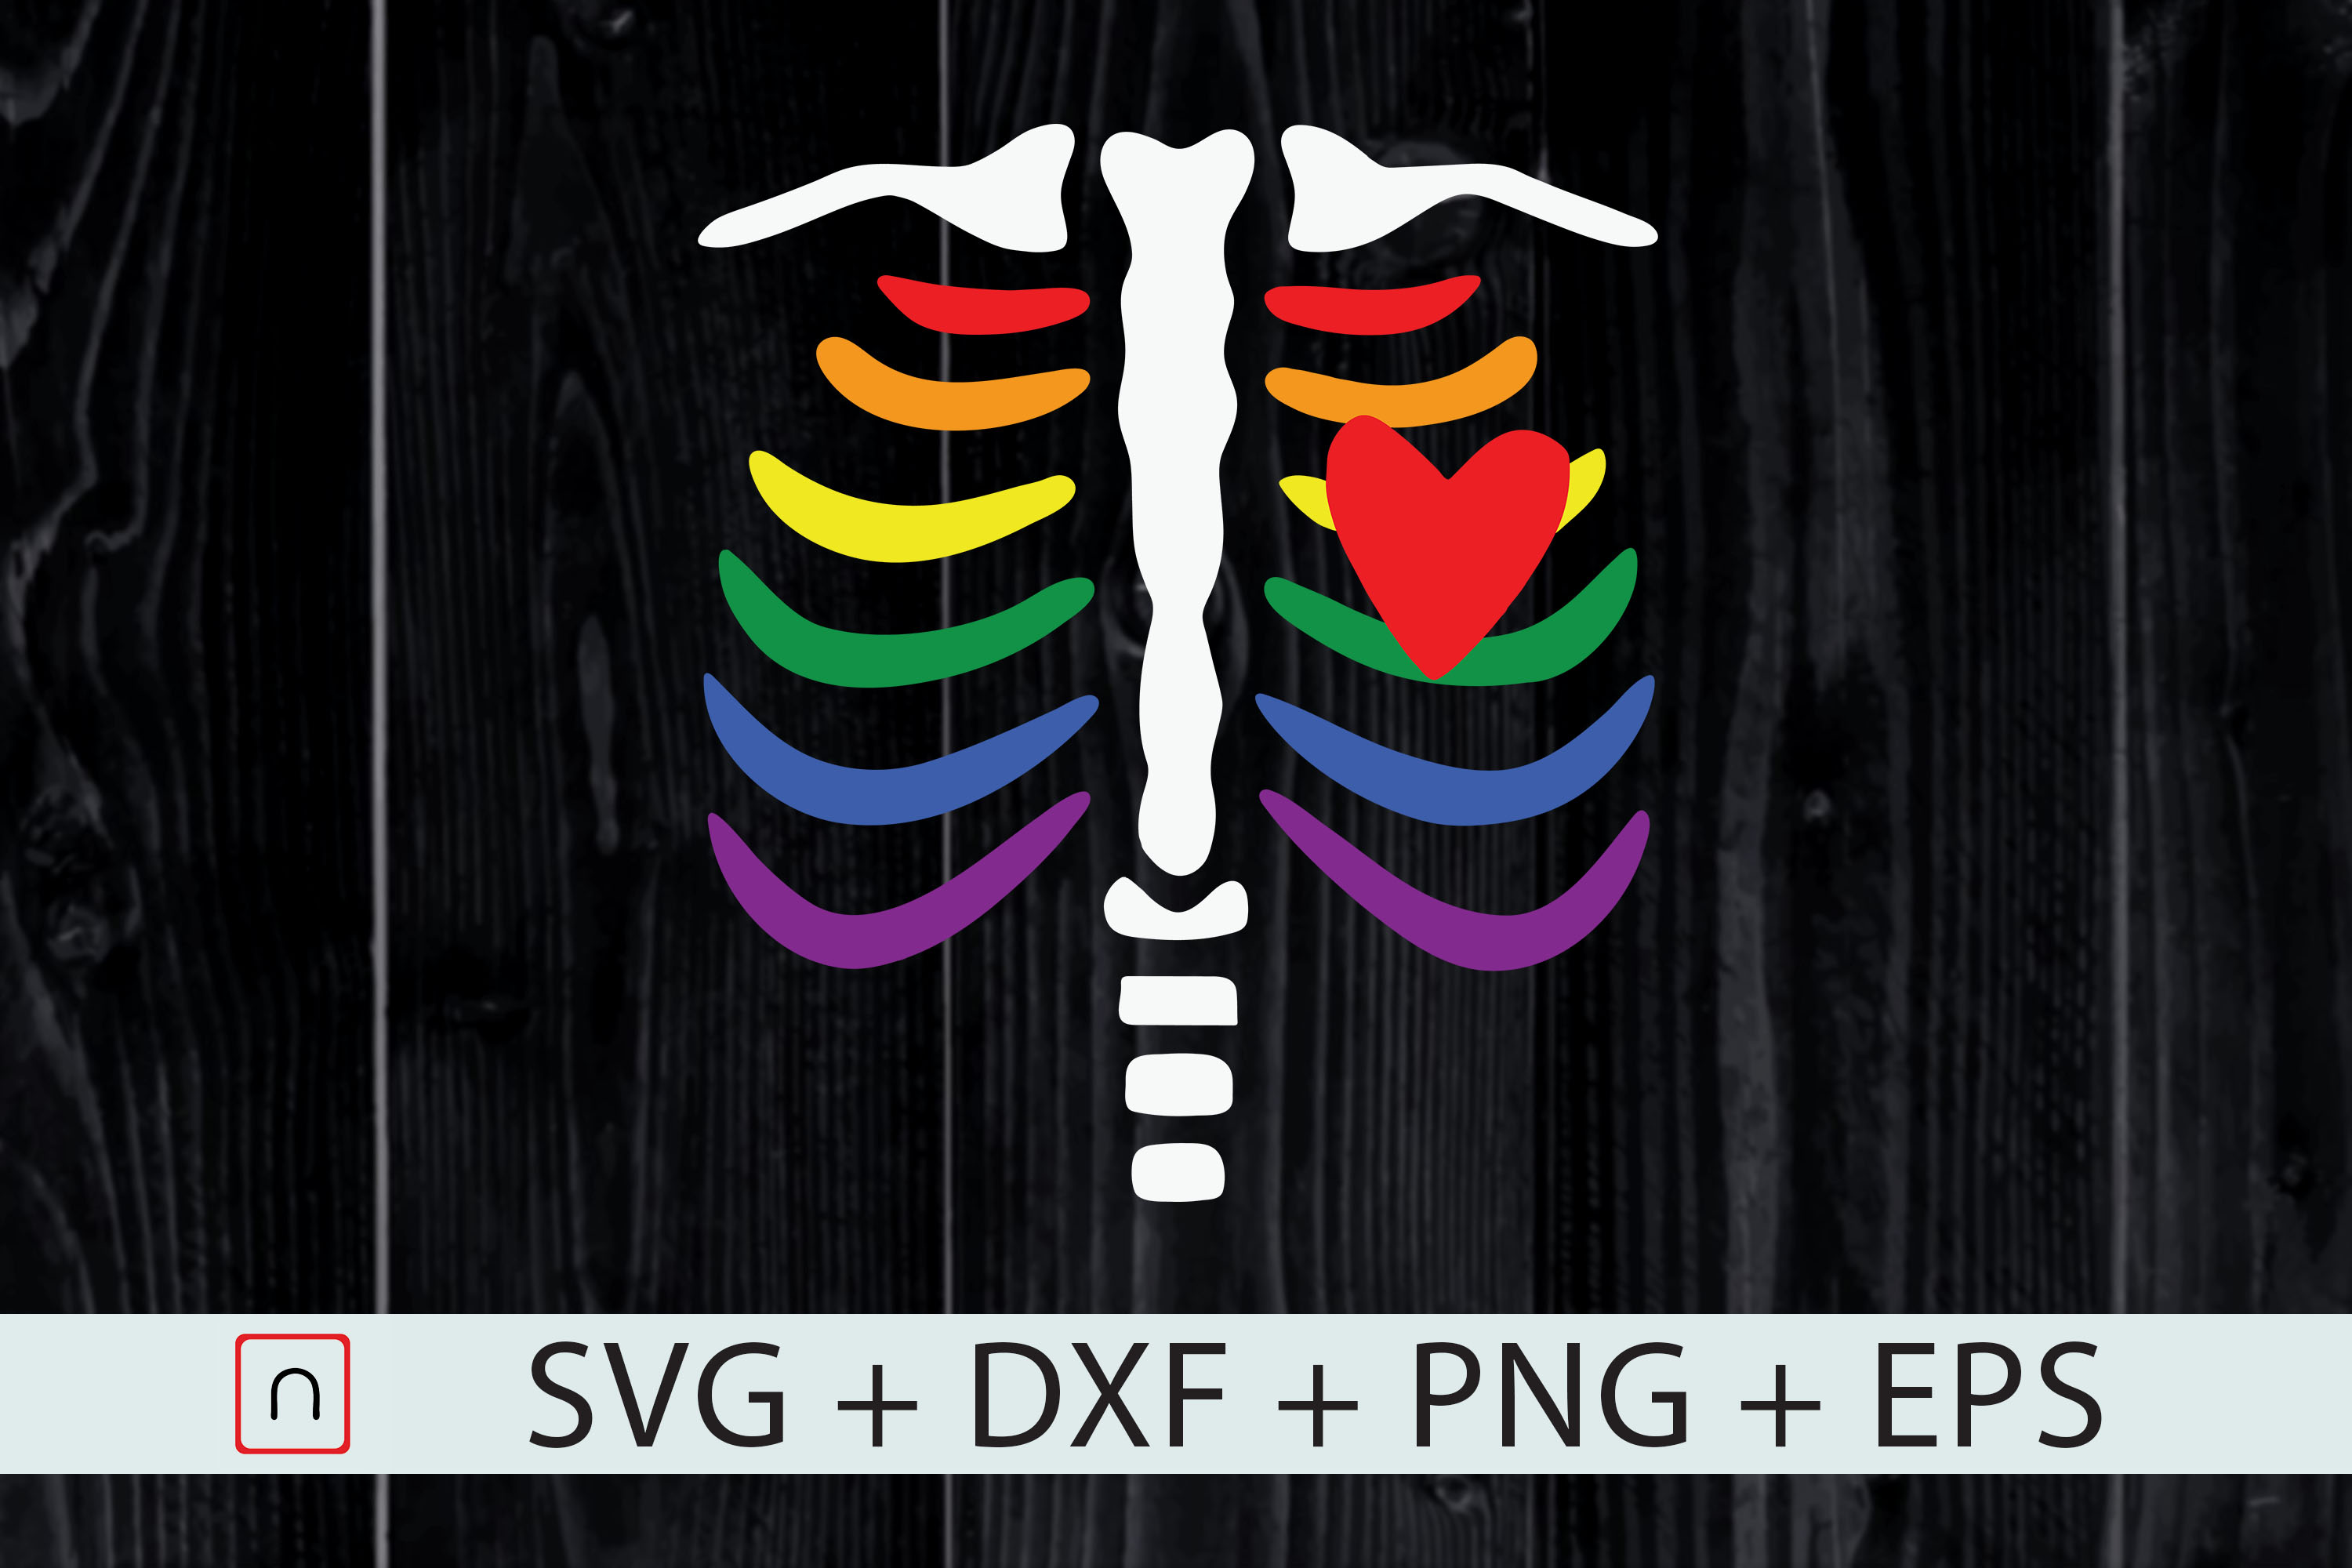 Download Free Lgbt Pride Rib Cage Funny Gift Lgbtq Graphic By Novalia for Cricut Explore, Silhouette and other cutting machines.